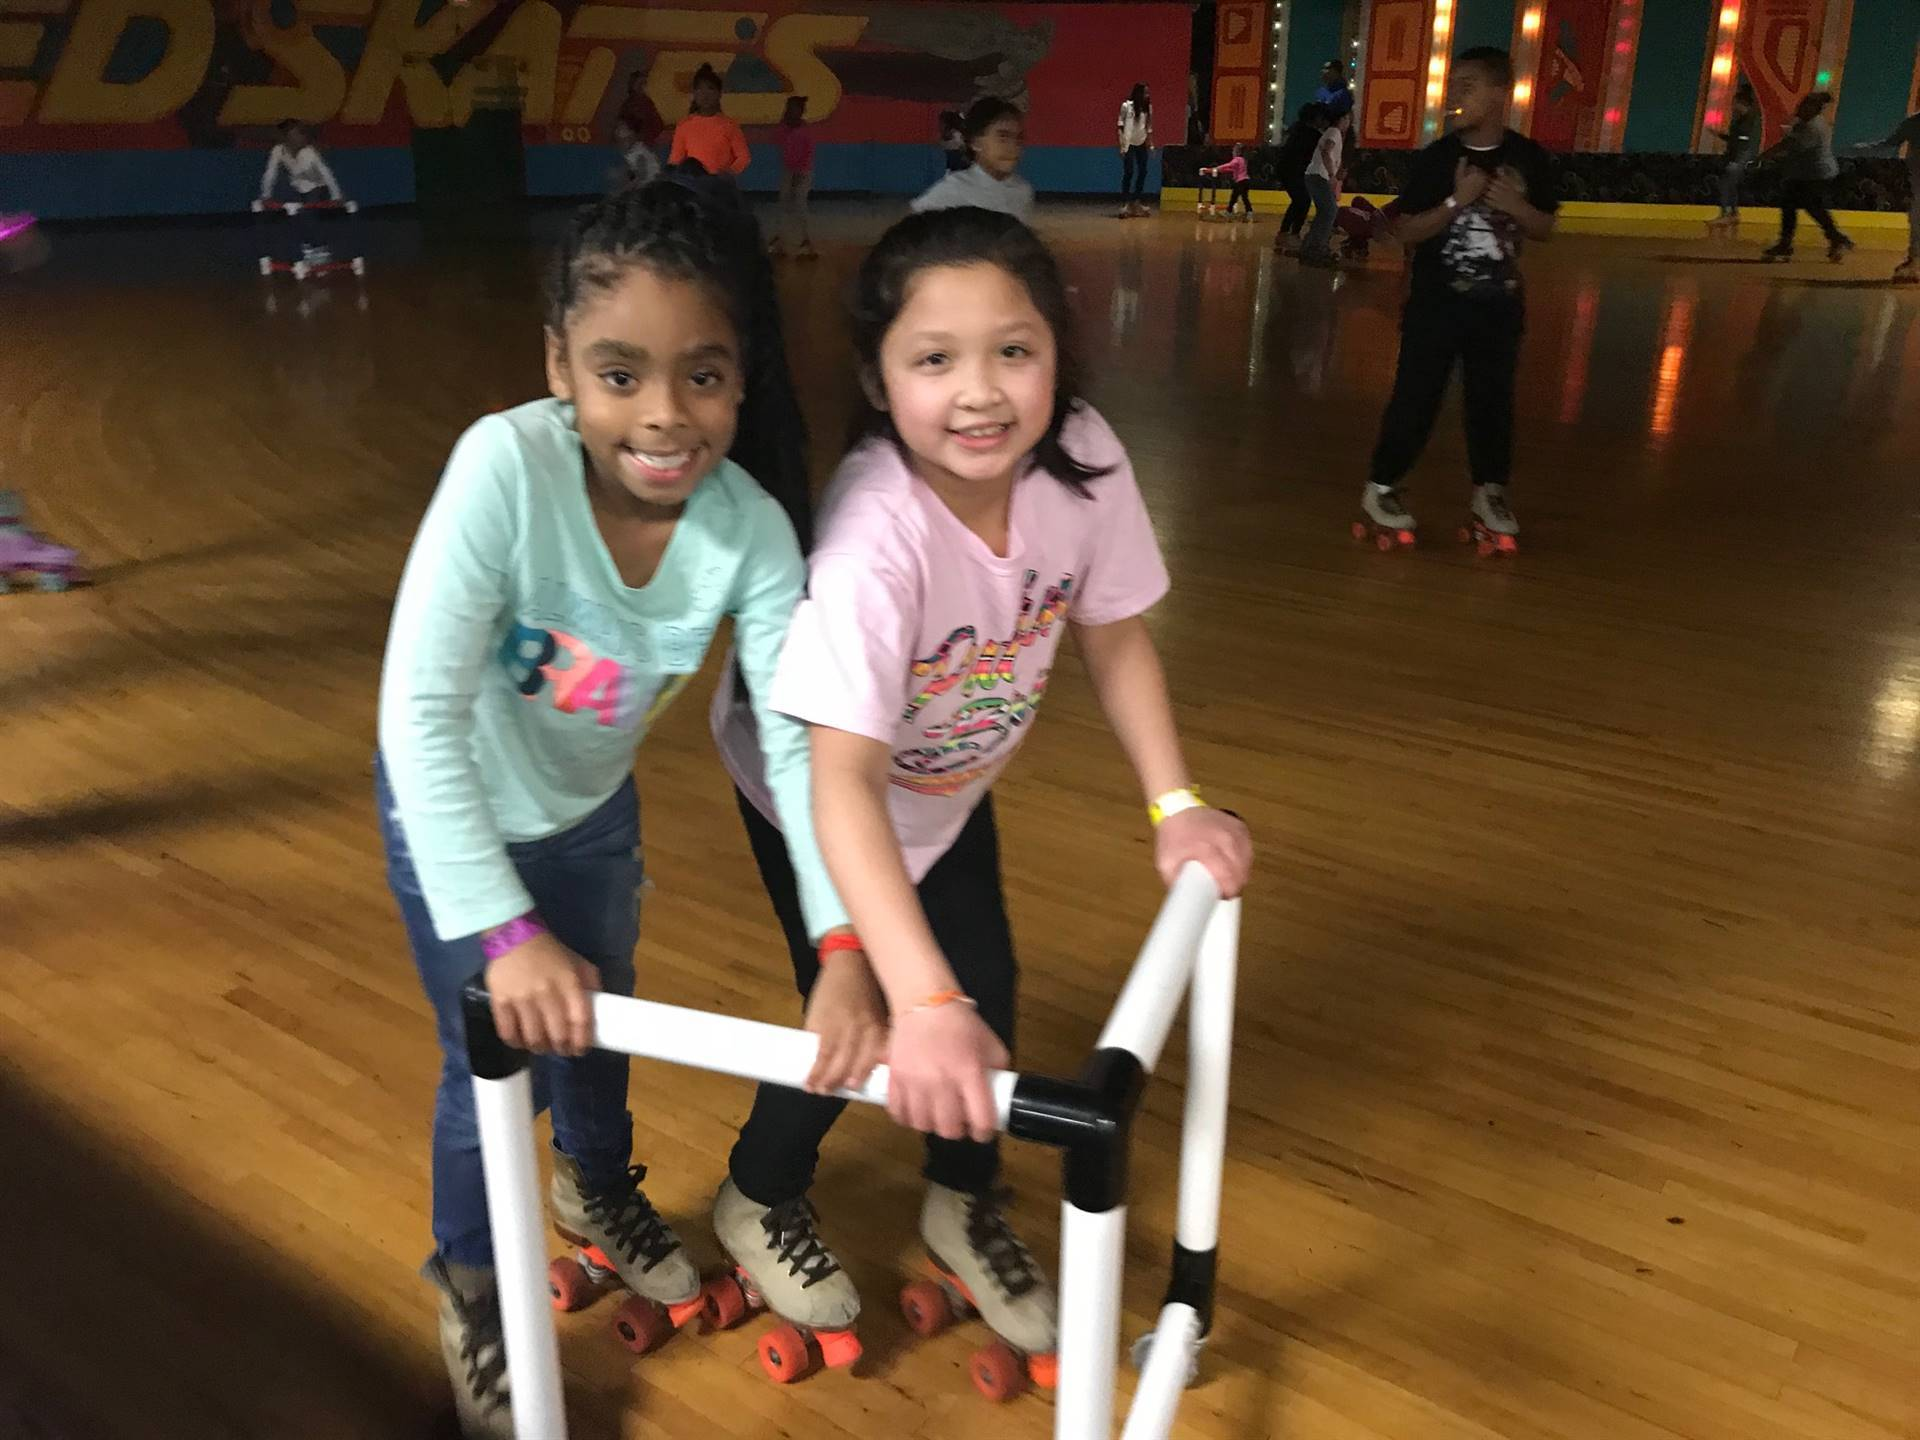 2 students rollerskating